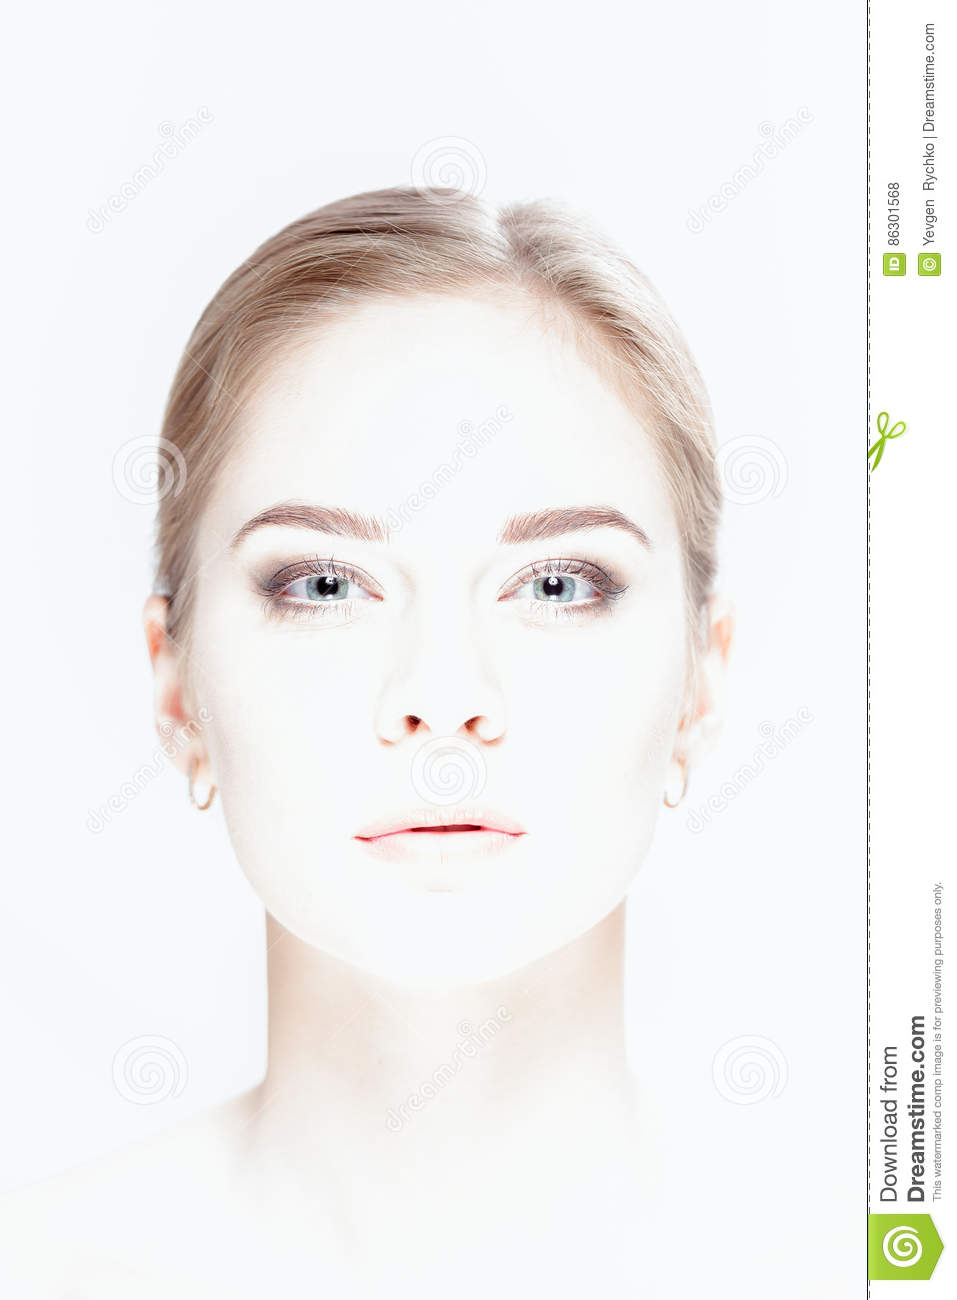 model stock images overexposed model stock photos royalty free stock images 8745